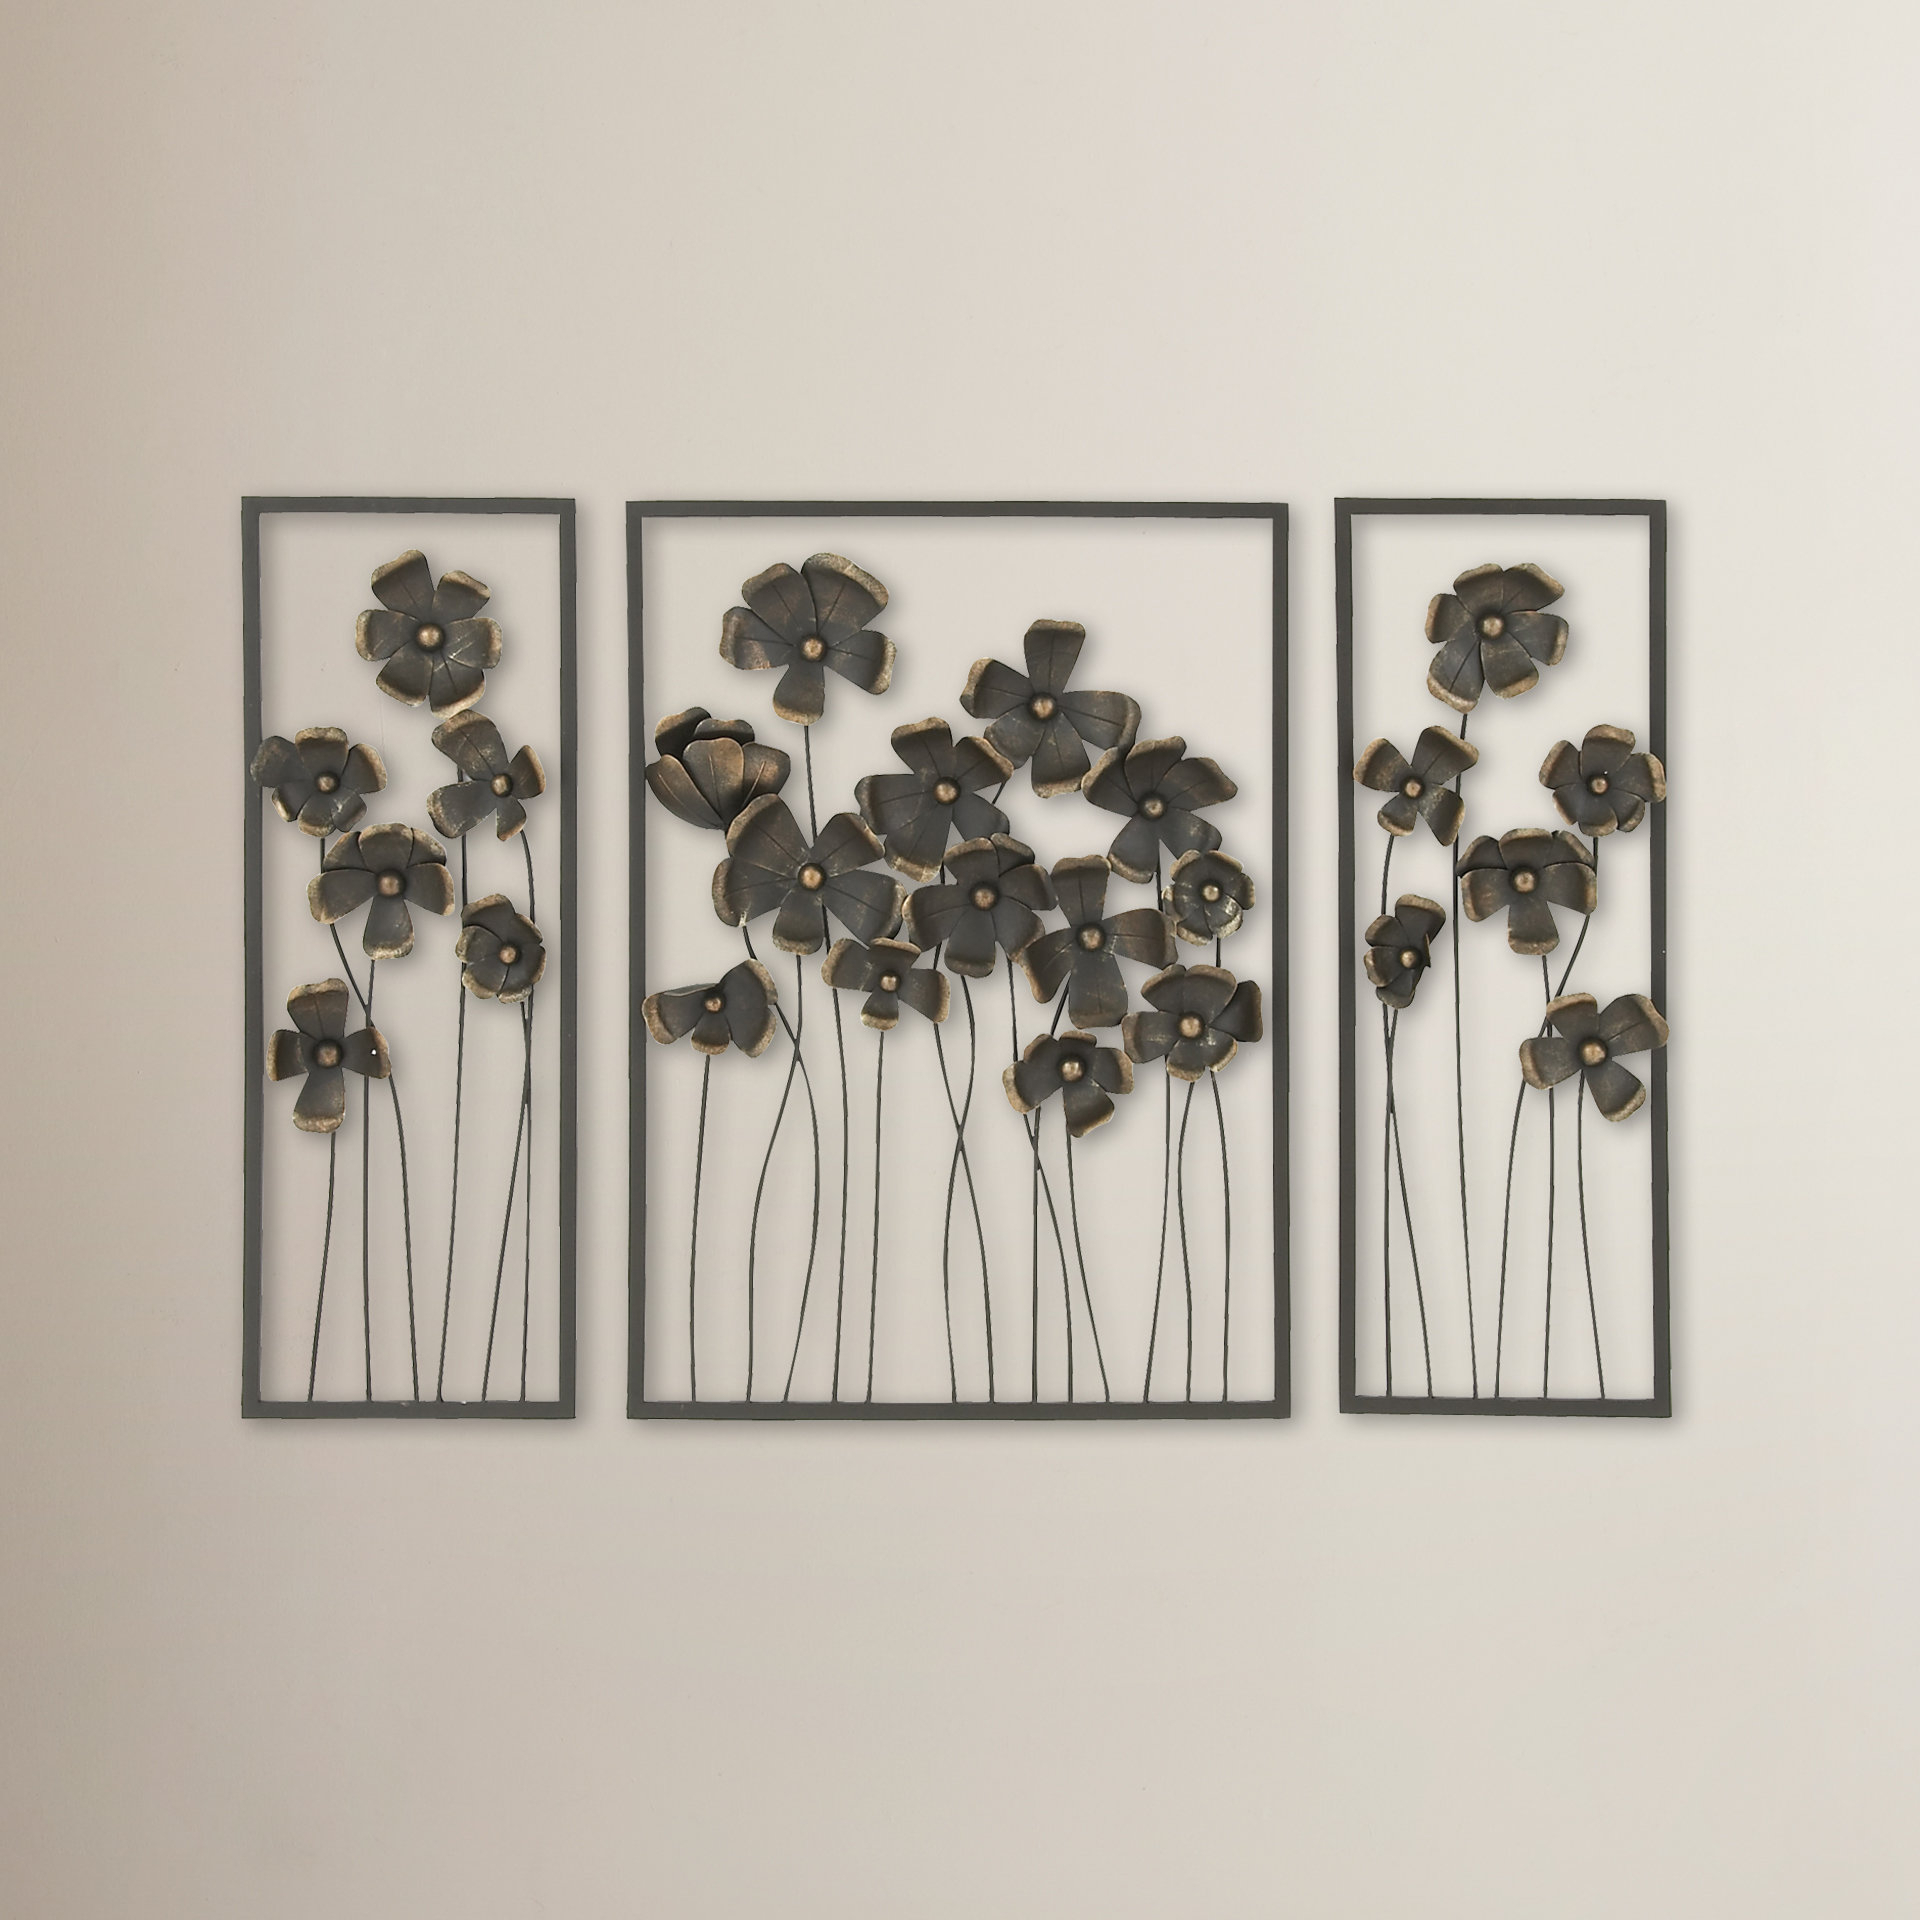 Brayden Studio 3 Piece Chic Wall Décor Set & Reviews (View 8 of 20)